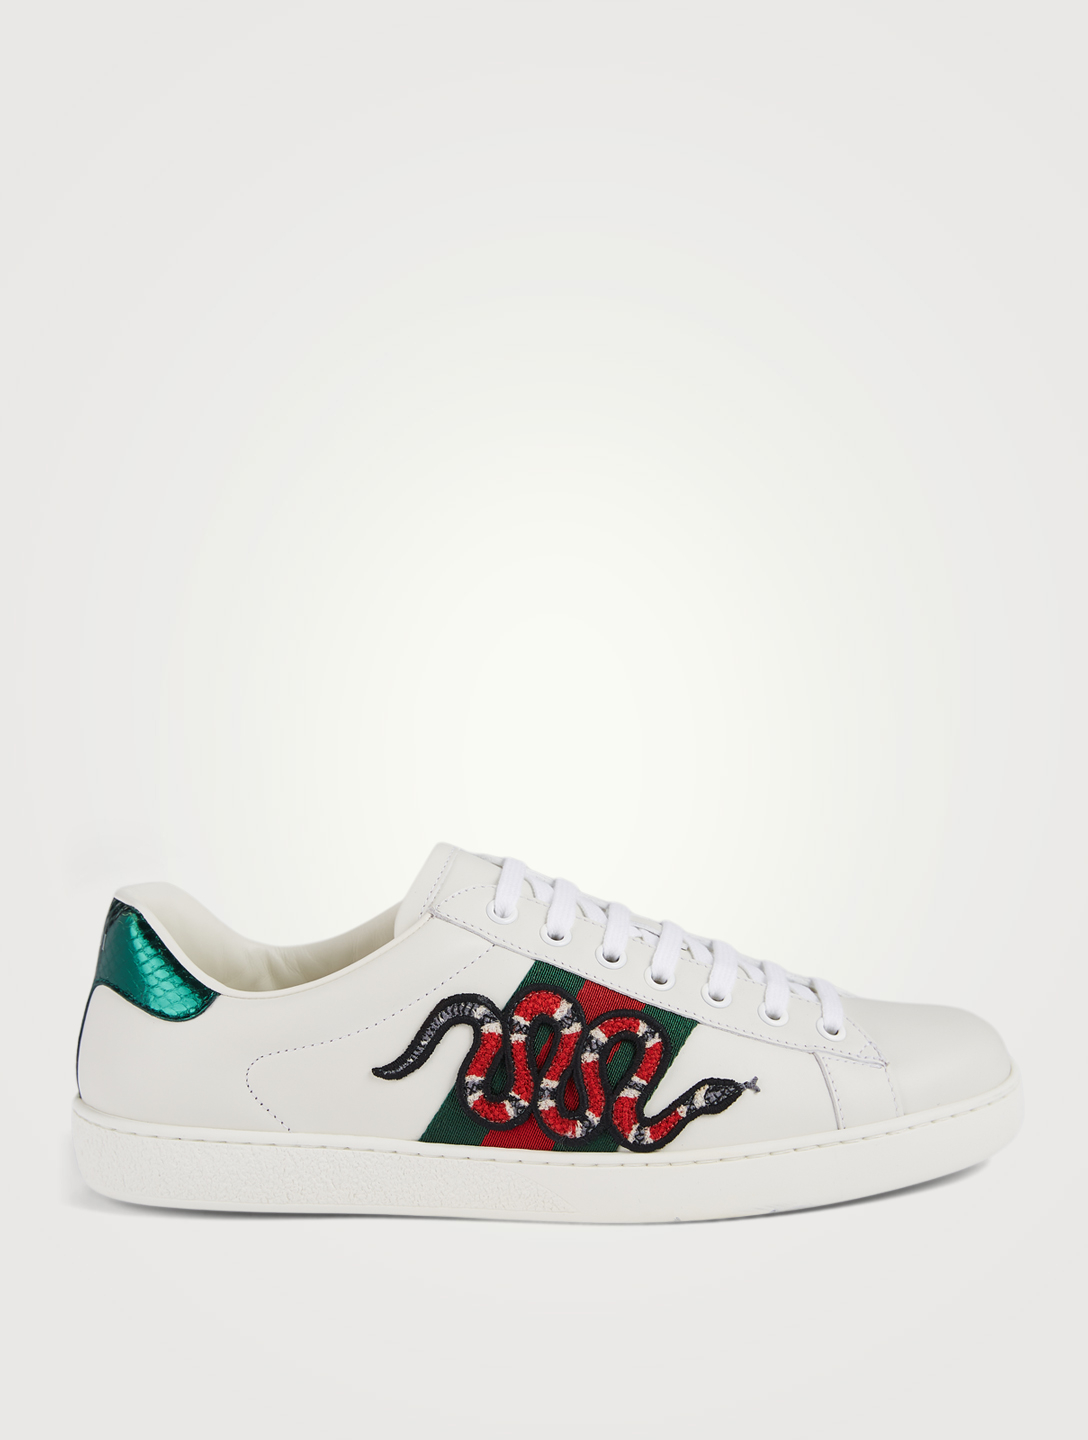 f5a1cf4358cd GUCCI New Ace Leather Sneakers With Snake Embroidery Men s White ...